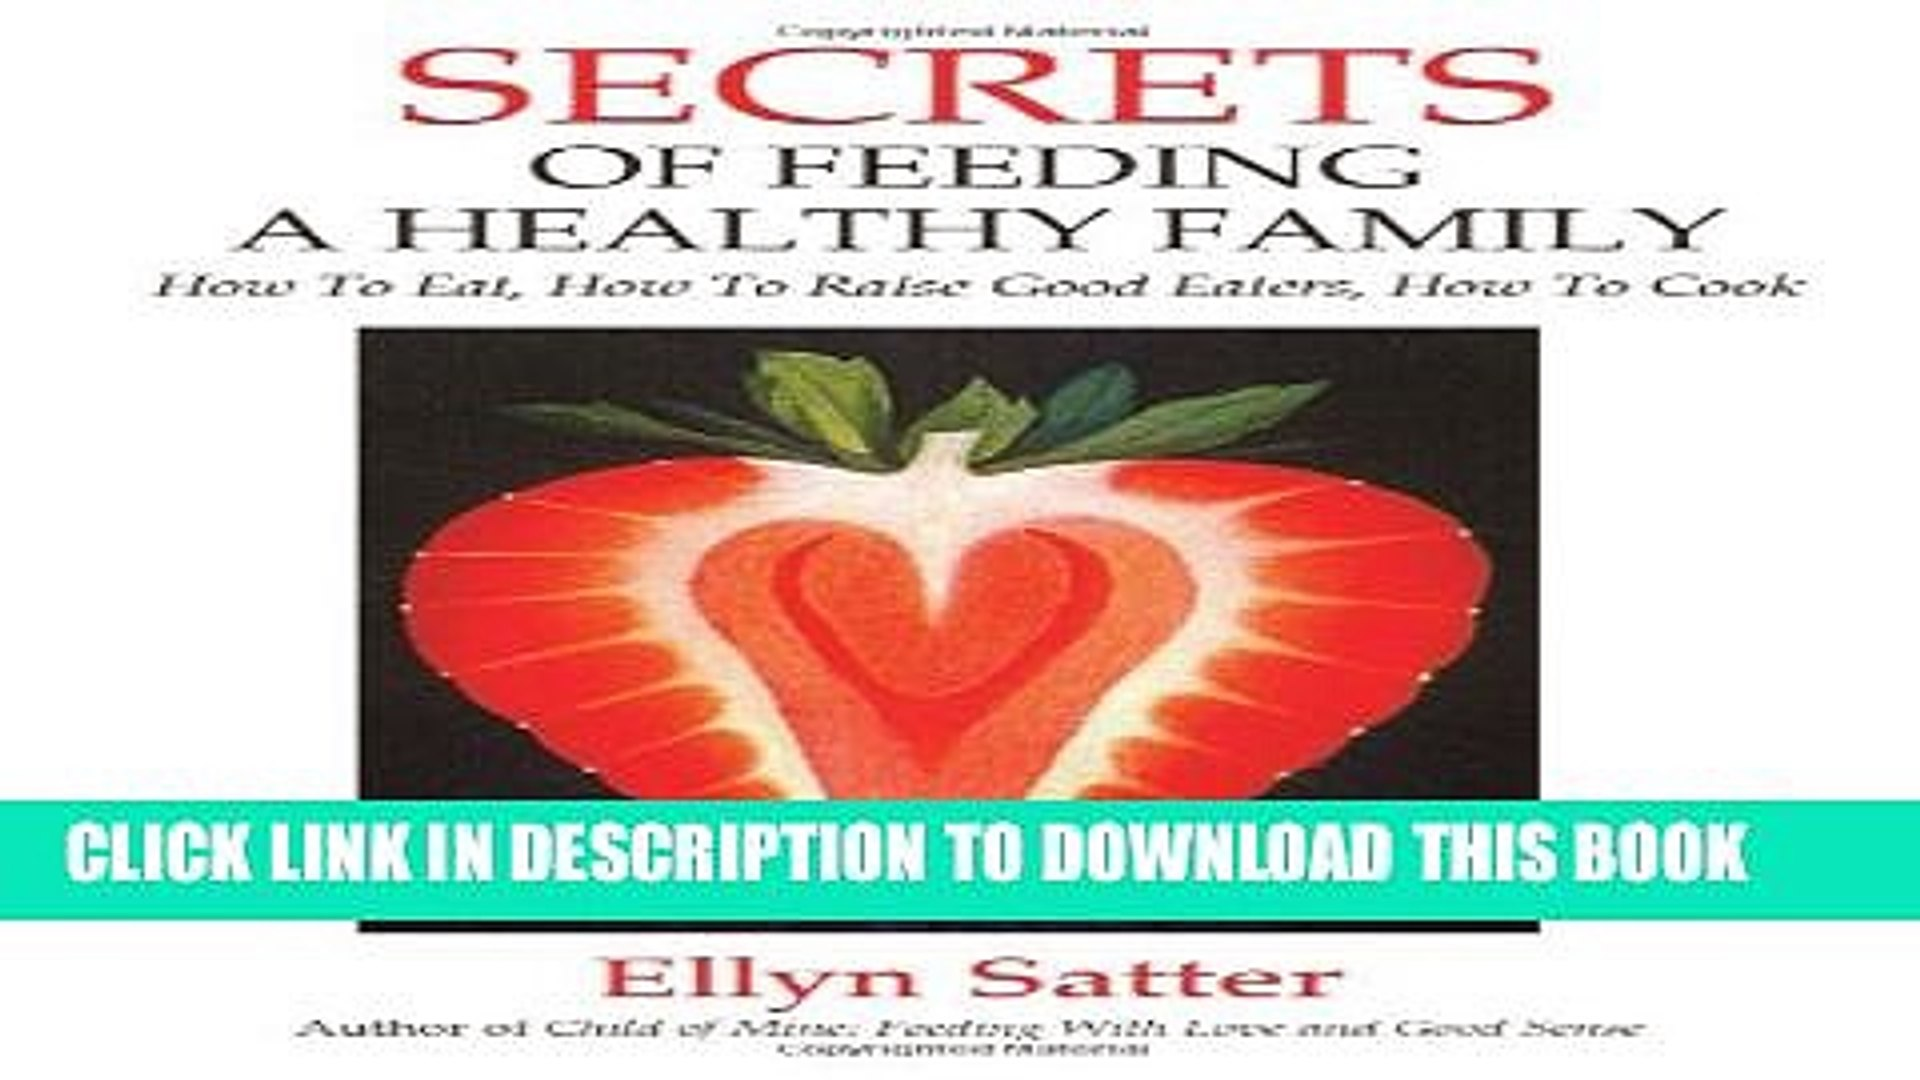 Collection Book Secrets of Feeding a Healthy Family: How to Eat, How to Raise Good Eaters, How to